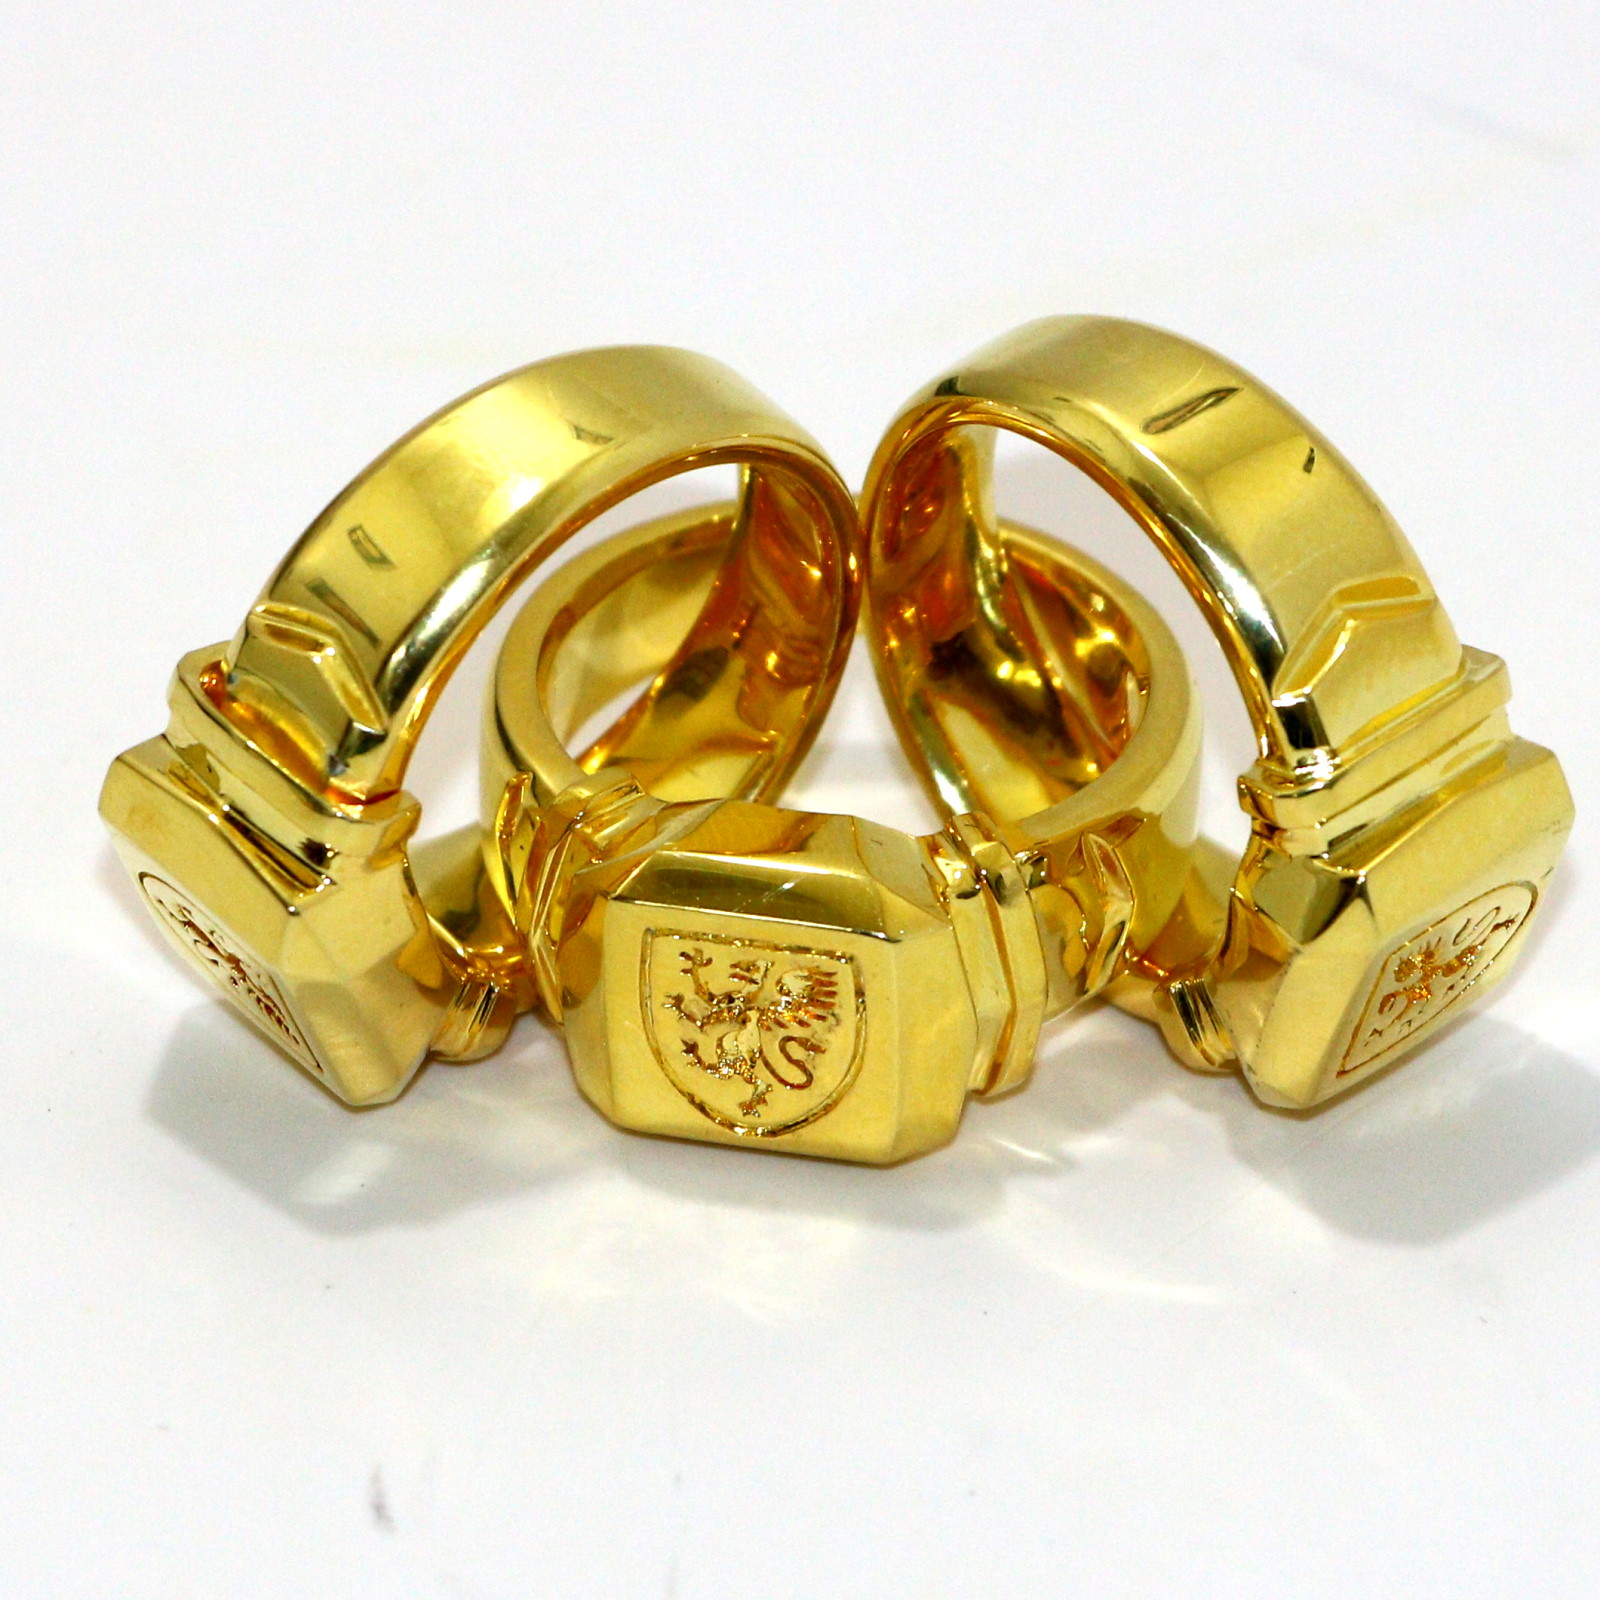 18k Gold Plated Linking Finger Rings by David Regal